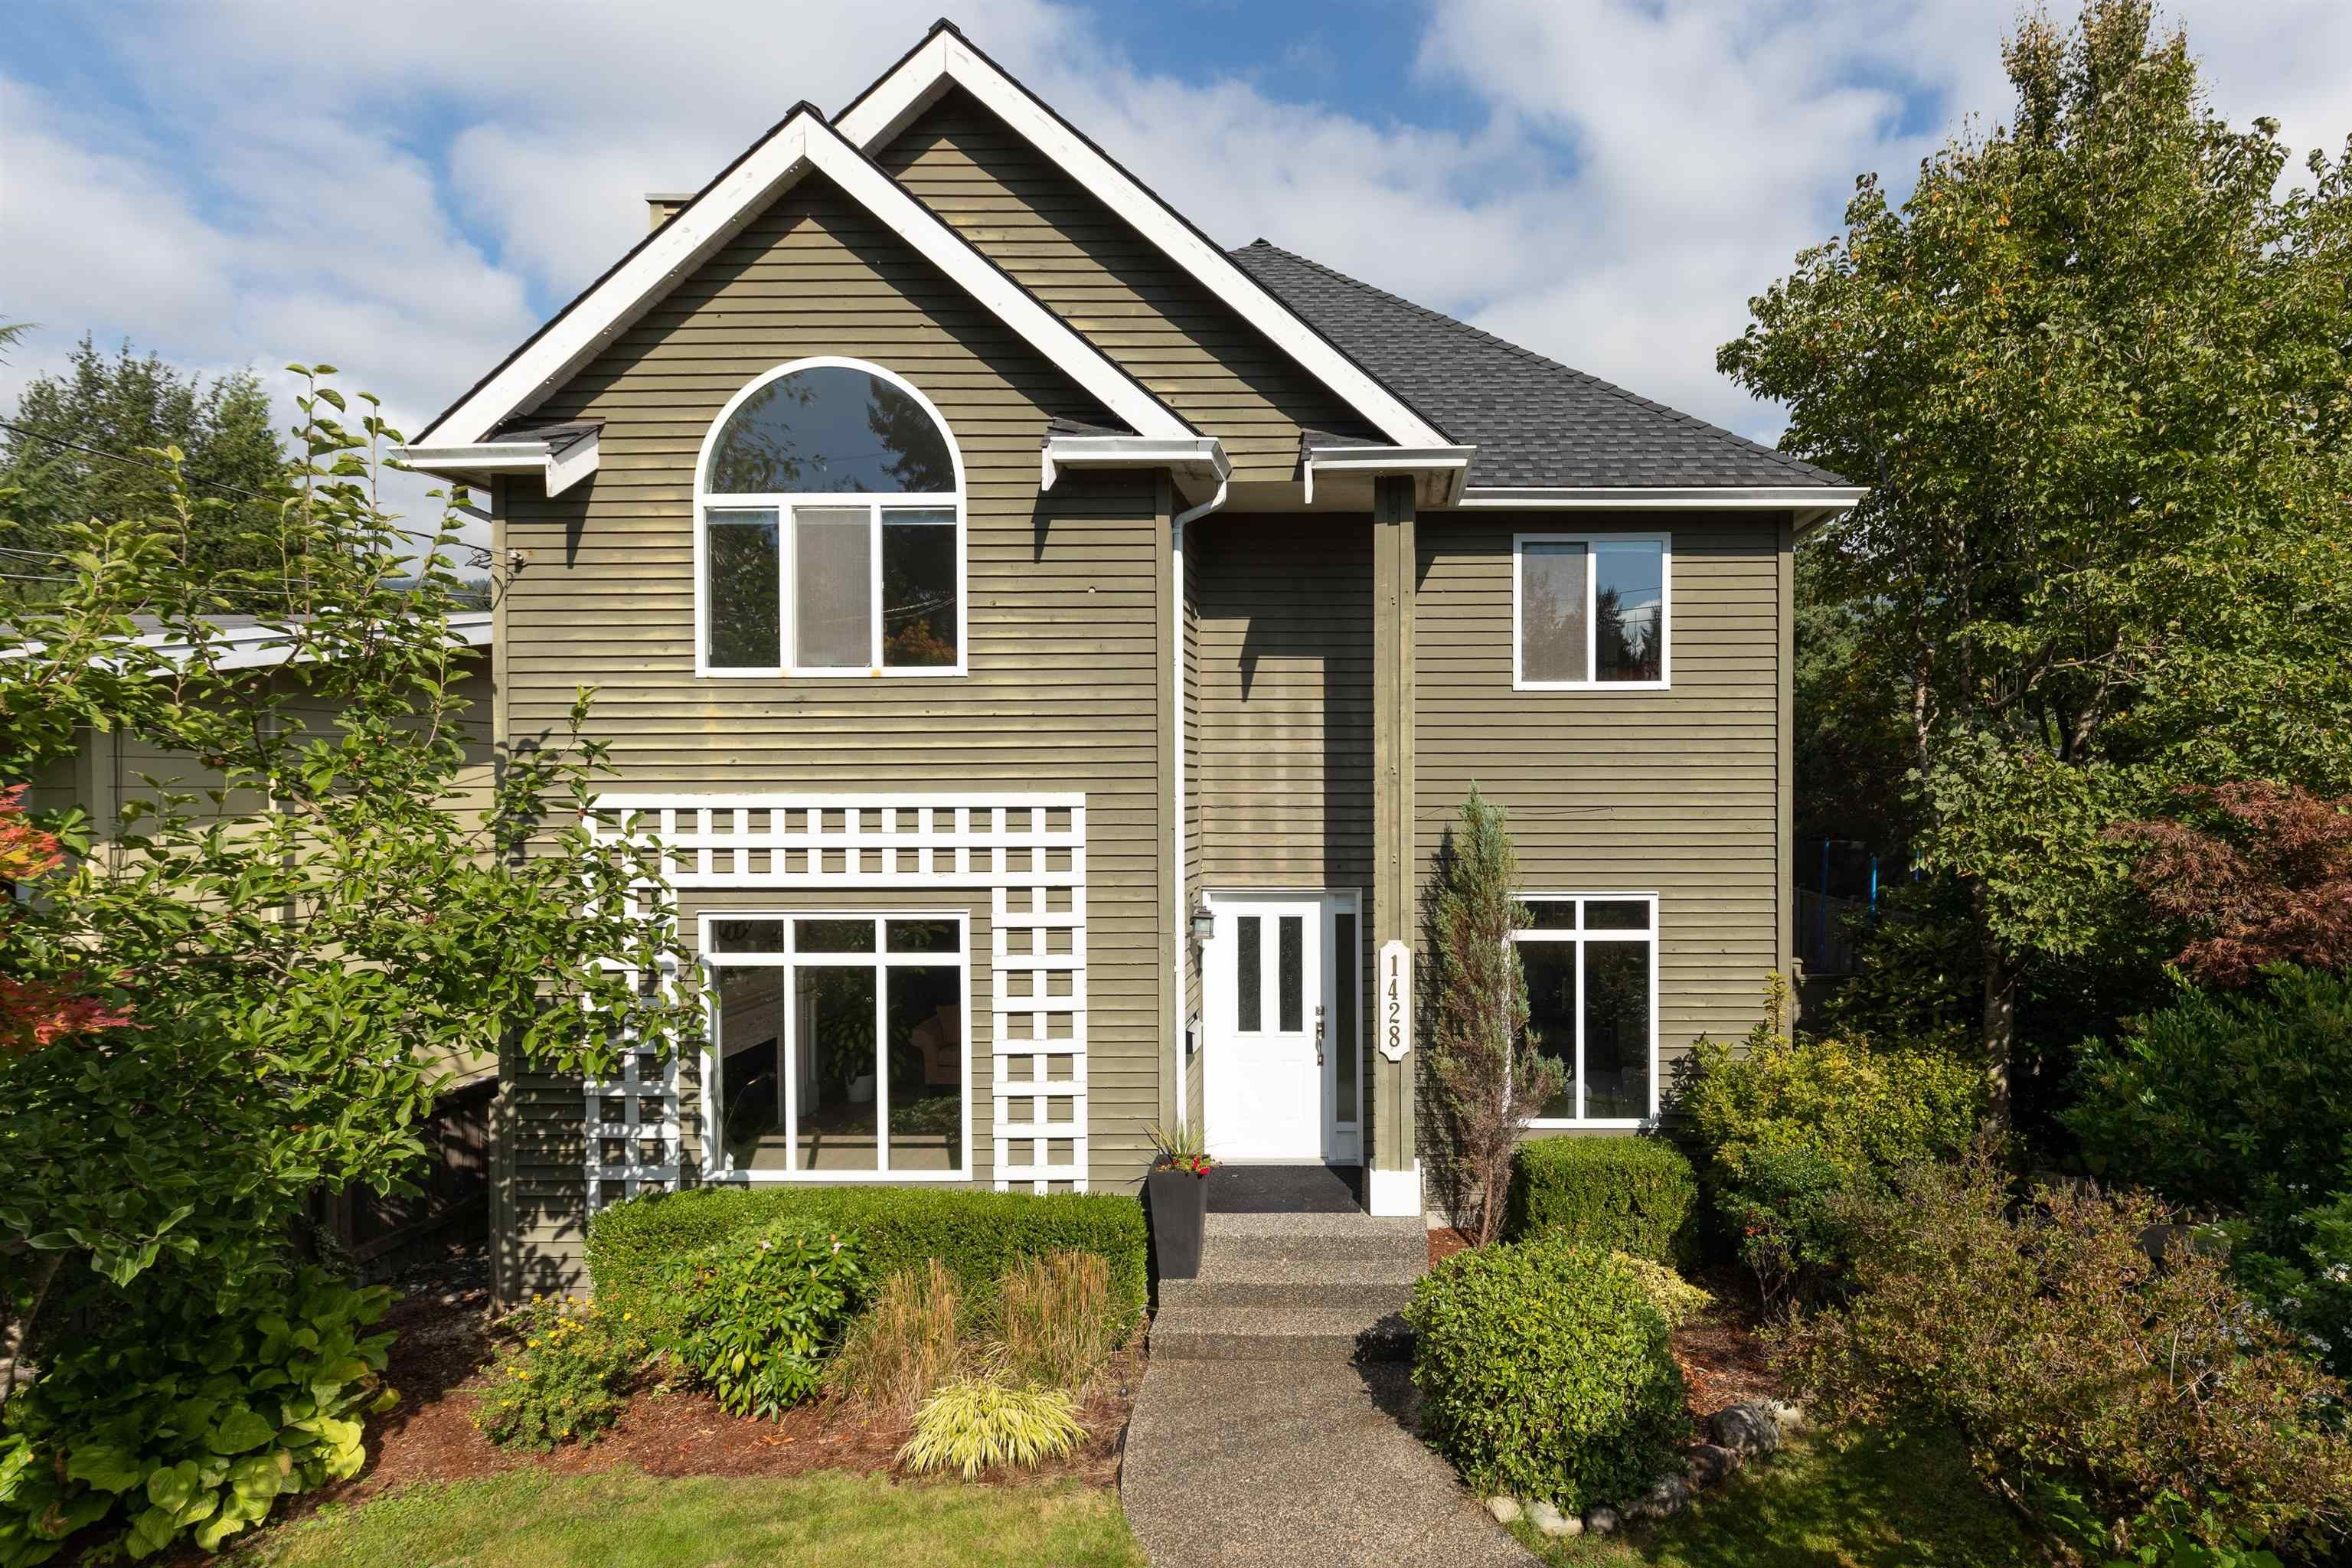 Main Photo: 1428 LAING Drive in North Vancouver: Capilano NV House for sale : MLS®# R2622168